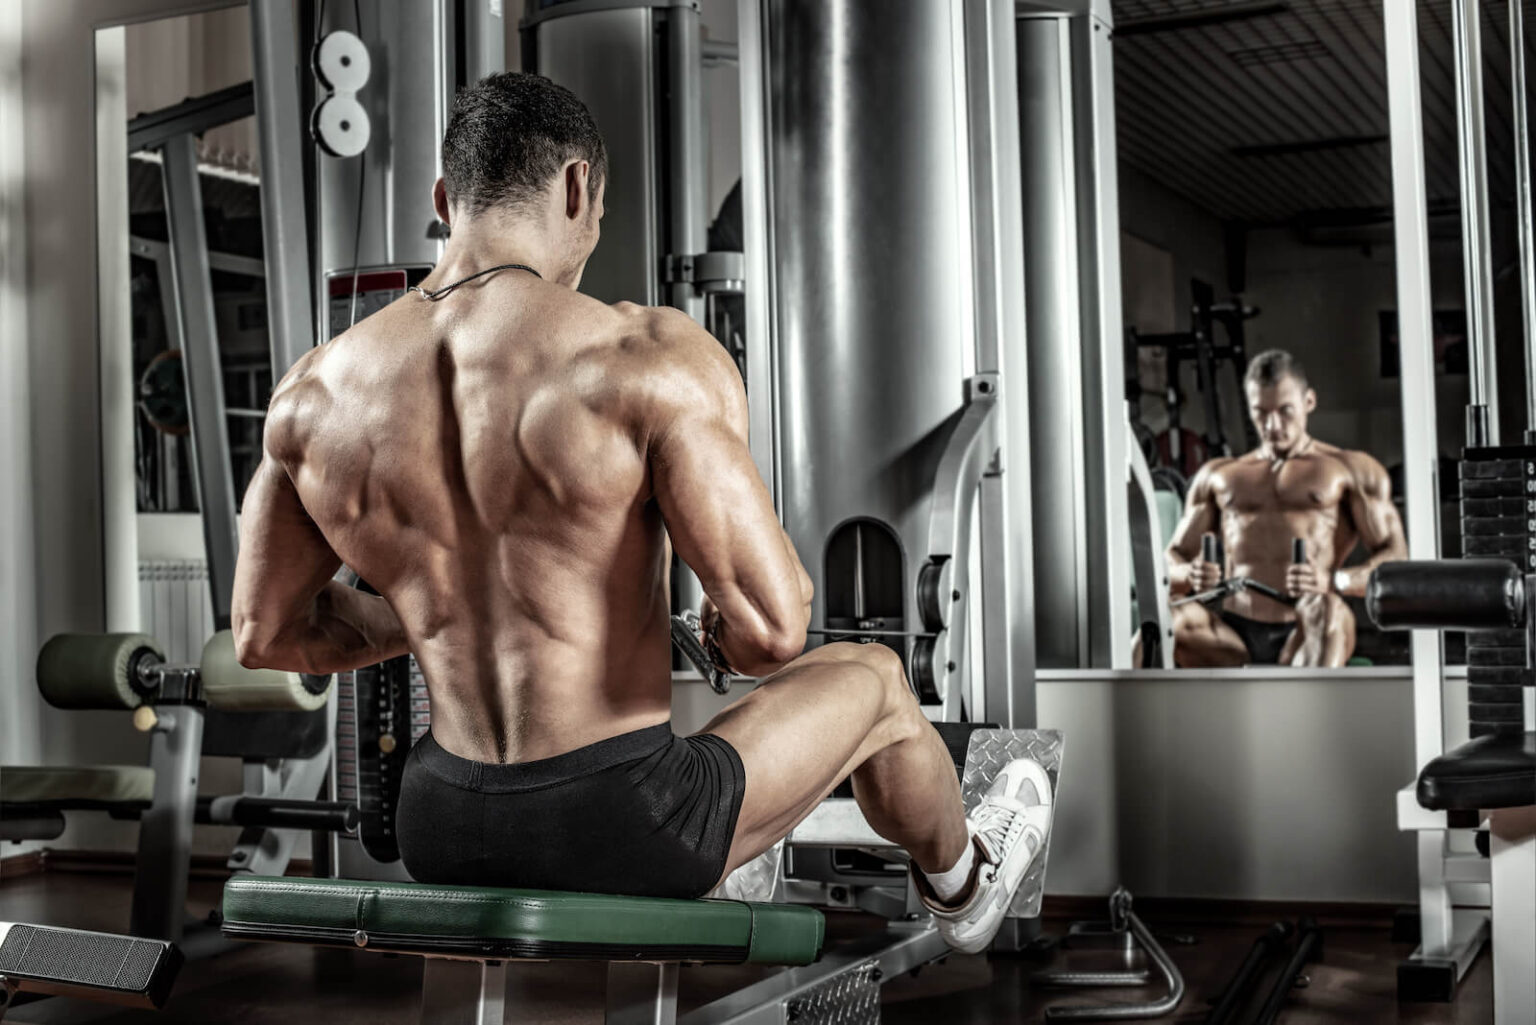 6 Greatest Bodybuilding Gyms In the World for 2021